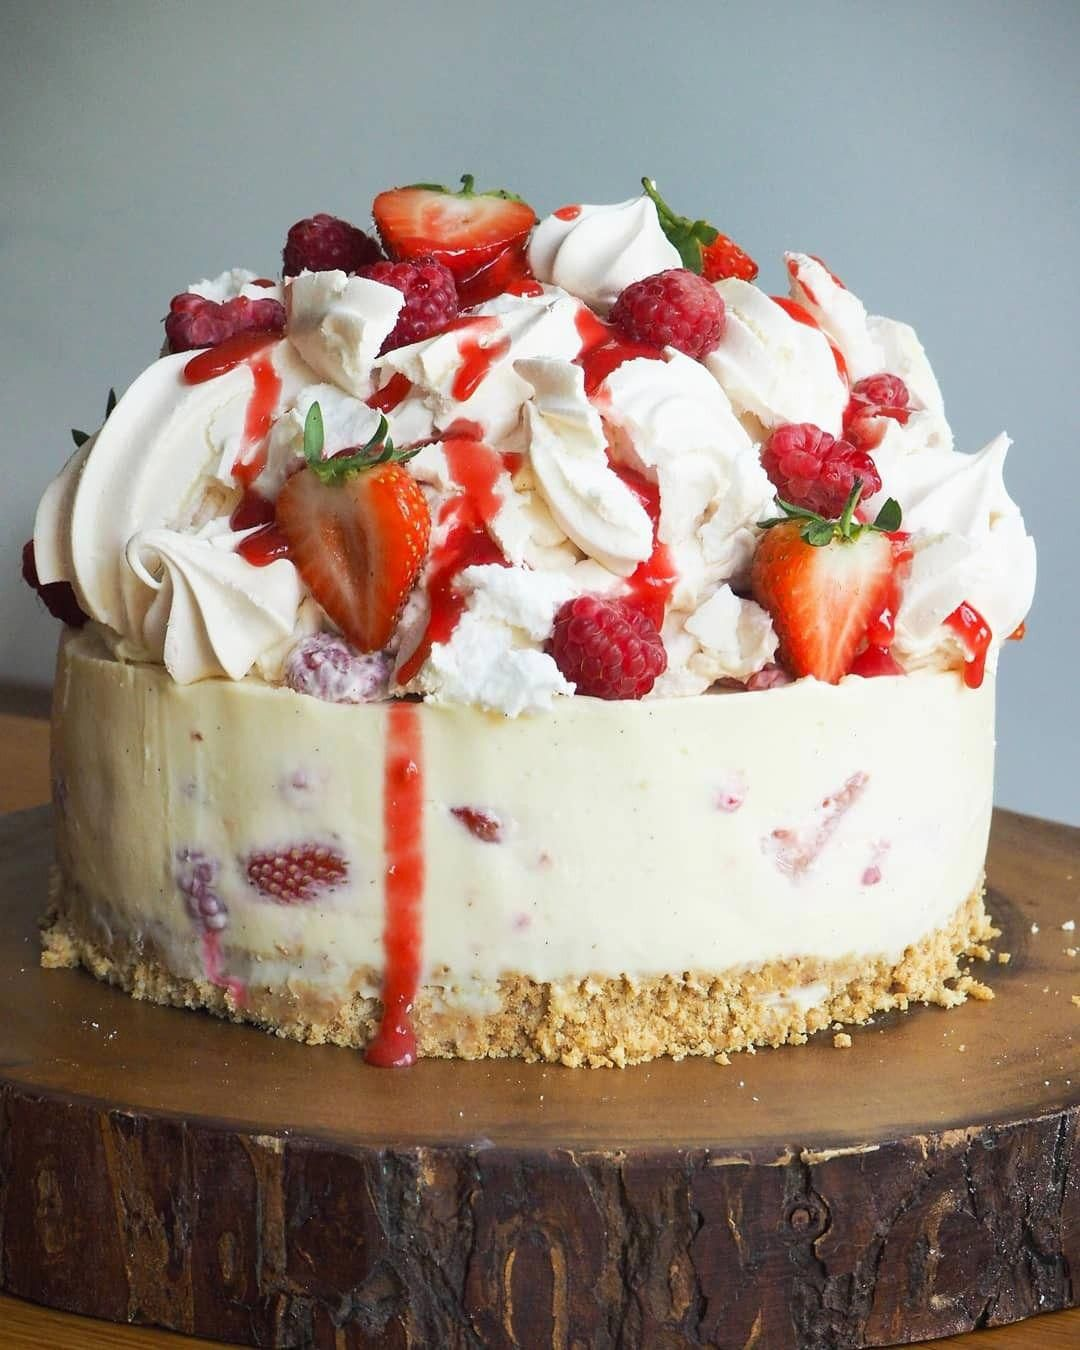 White Chocolate Cheesecake folded with Strawberries & Raspberries on a classic digestive base. Topped with a mountain of eton mess; crush meringues, fresh meringues and fresh berries #chocolatecheesecake #whitechocolateraspberrycheesecake